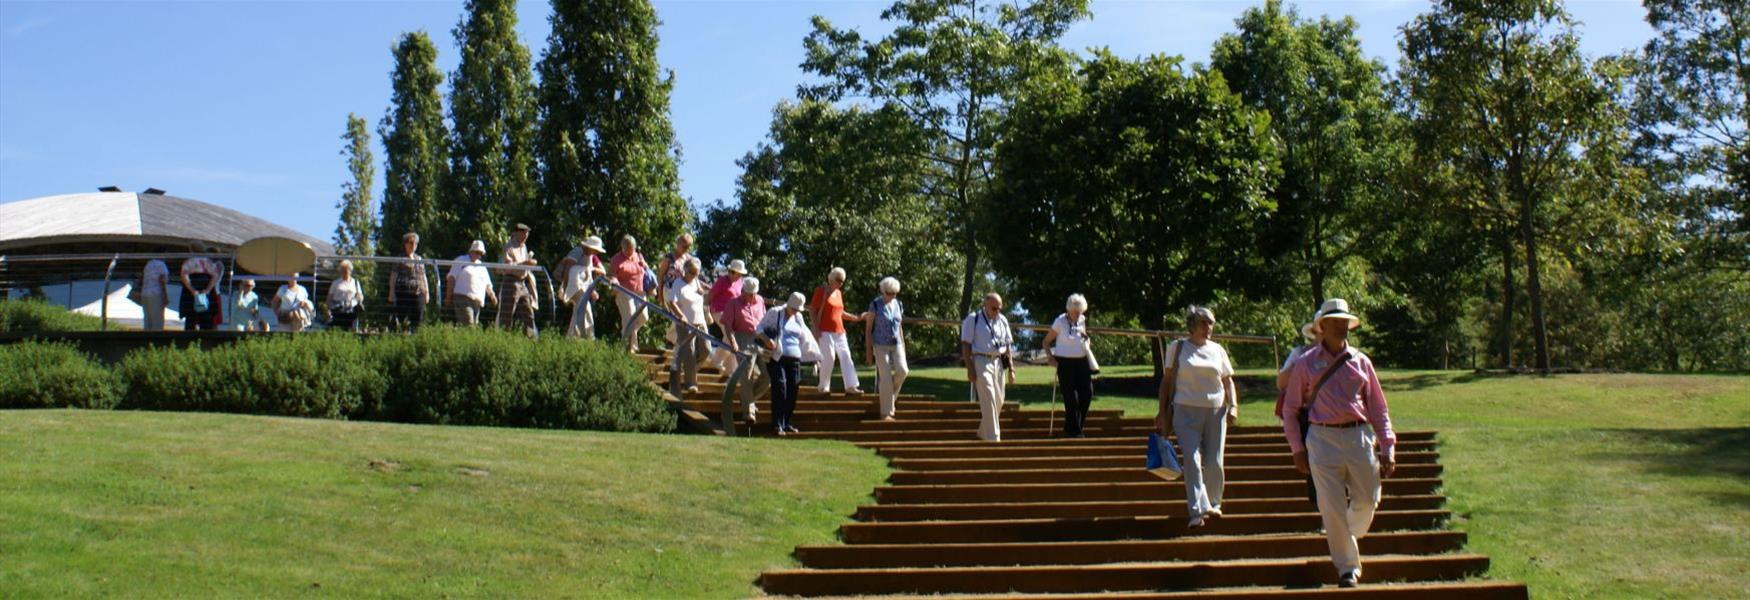 Group visiting The Savill Garden